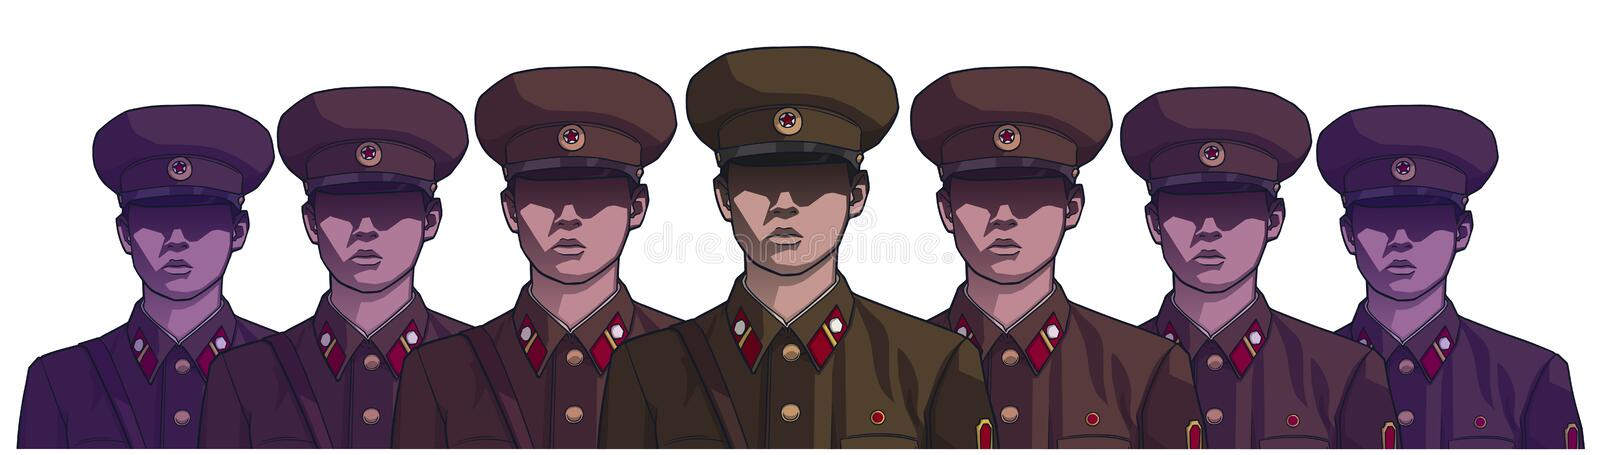 Illustration of north korean soldiers wearing uniform in color royalty free illustration